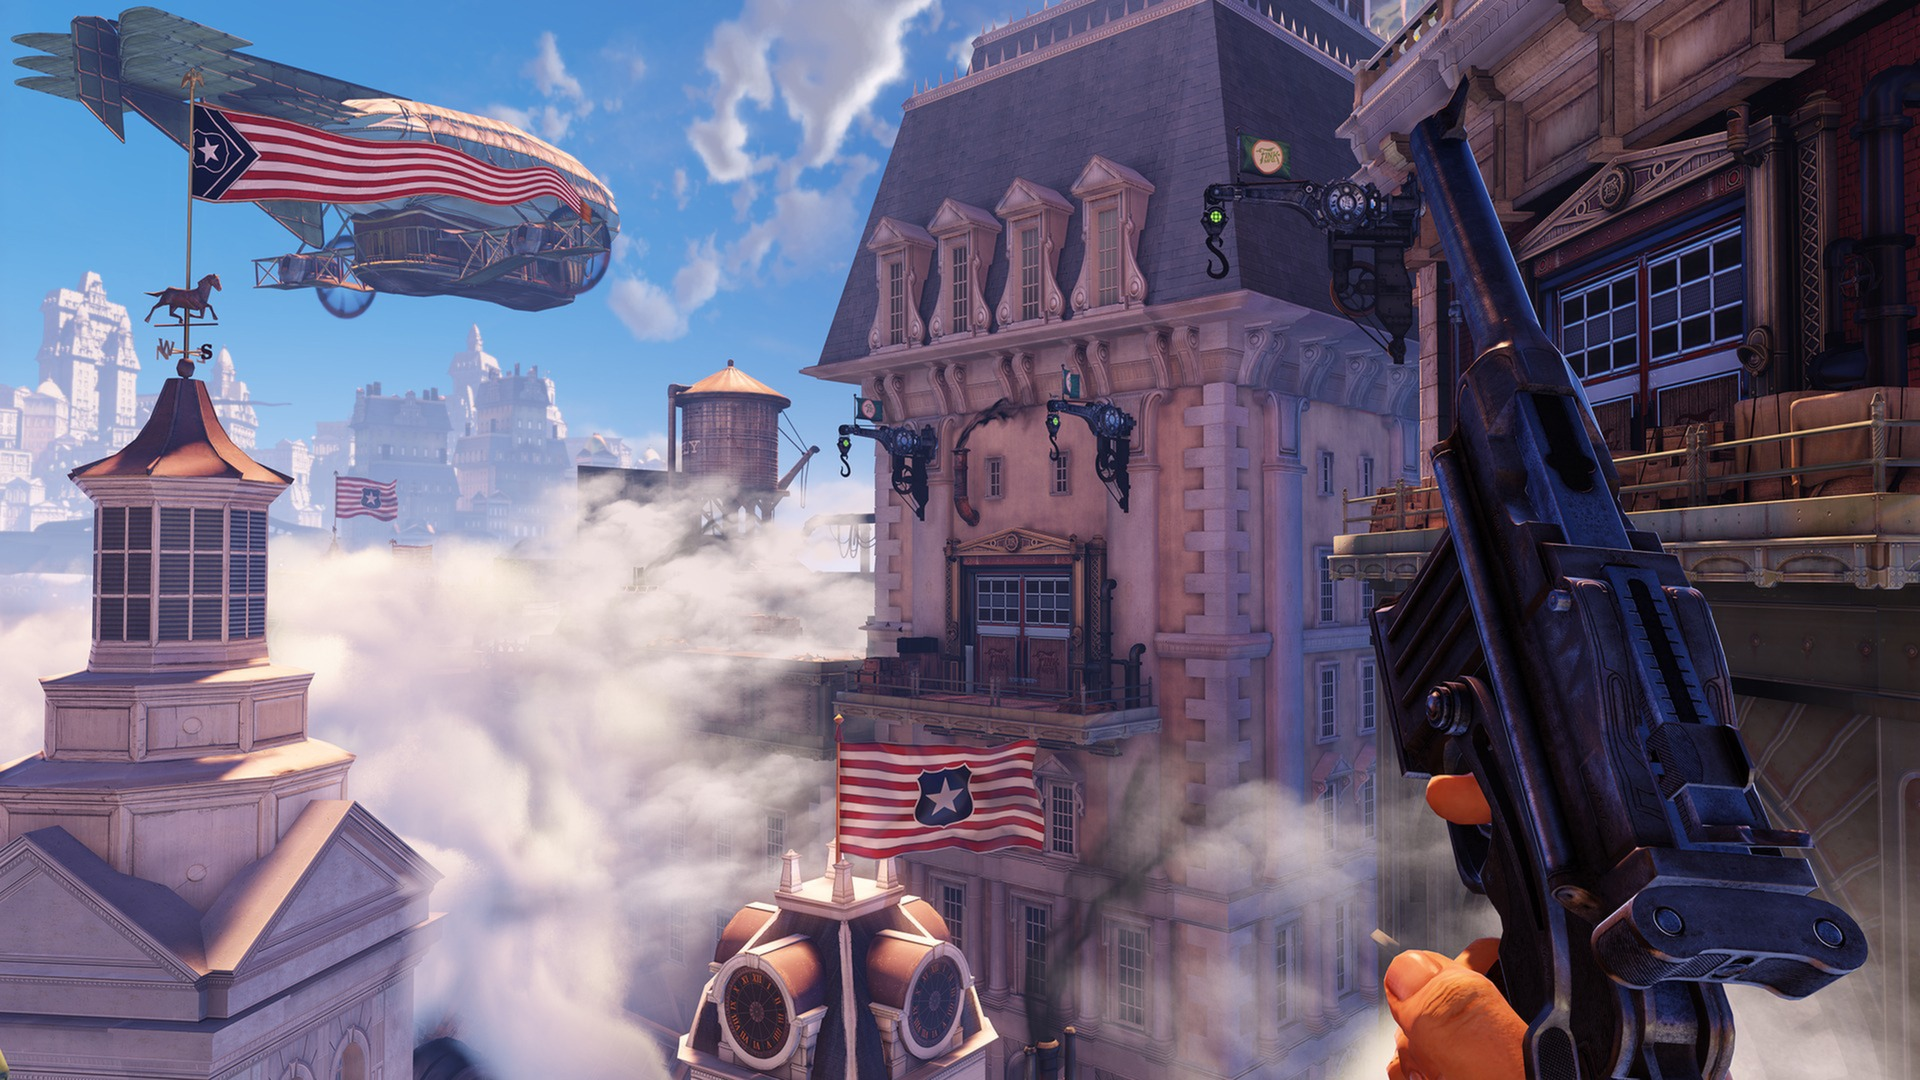 BioShock Infinite city of Columbia rooftop view in first-person